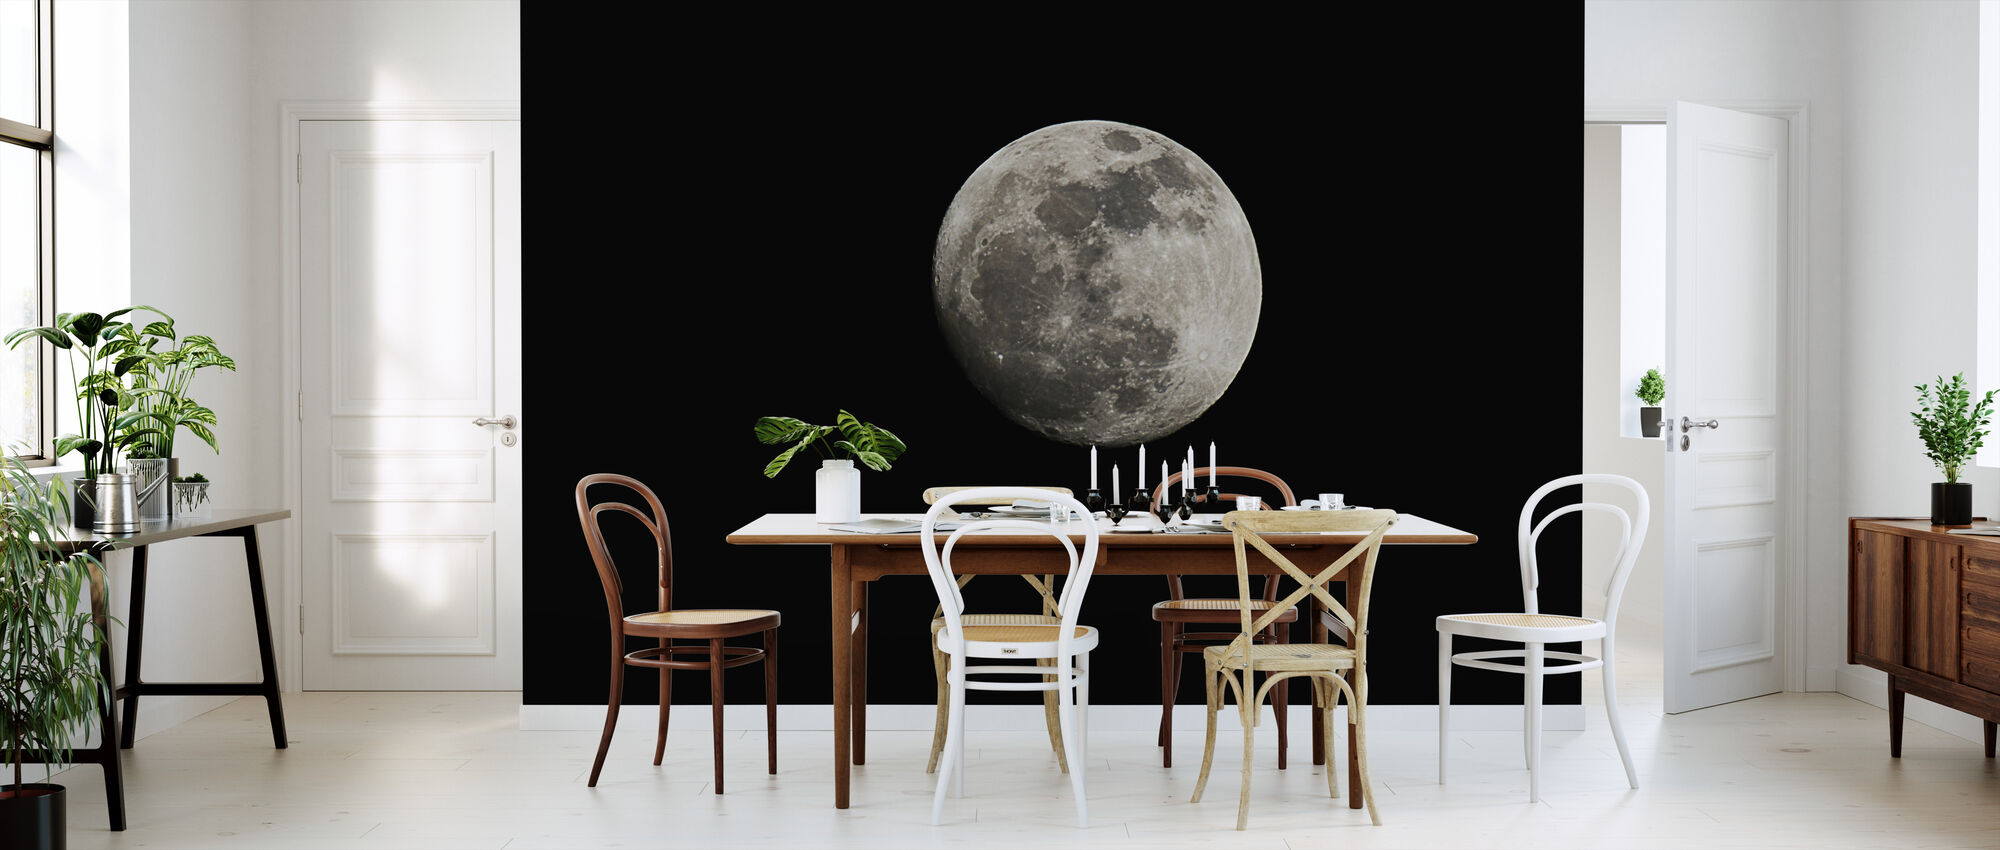 moon fototapete nach ma photowall. Black Bedroom Furniture Sets. Home Design Ideas